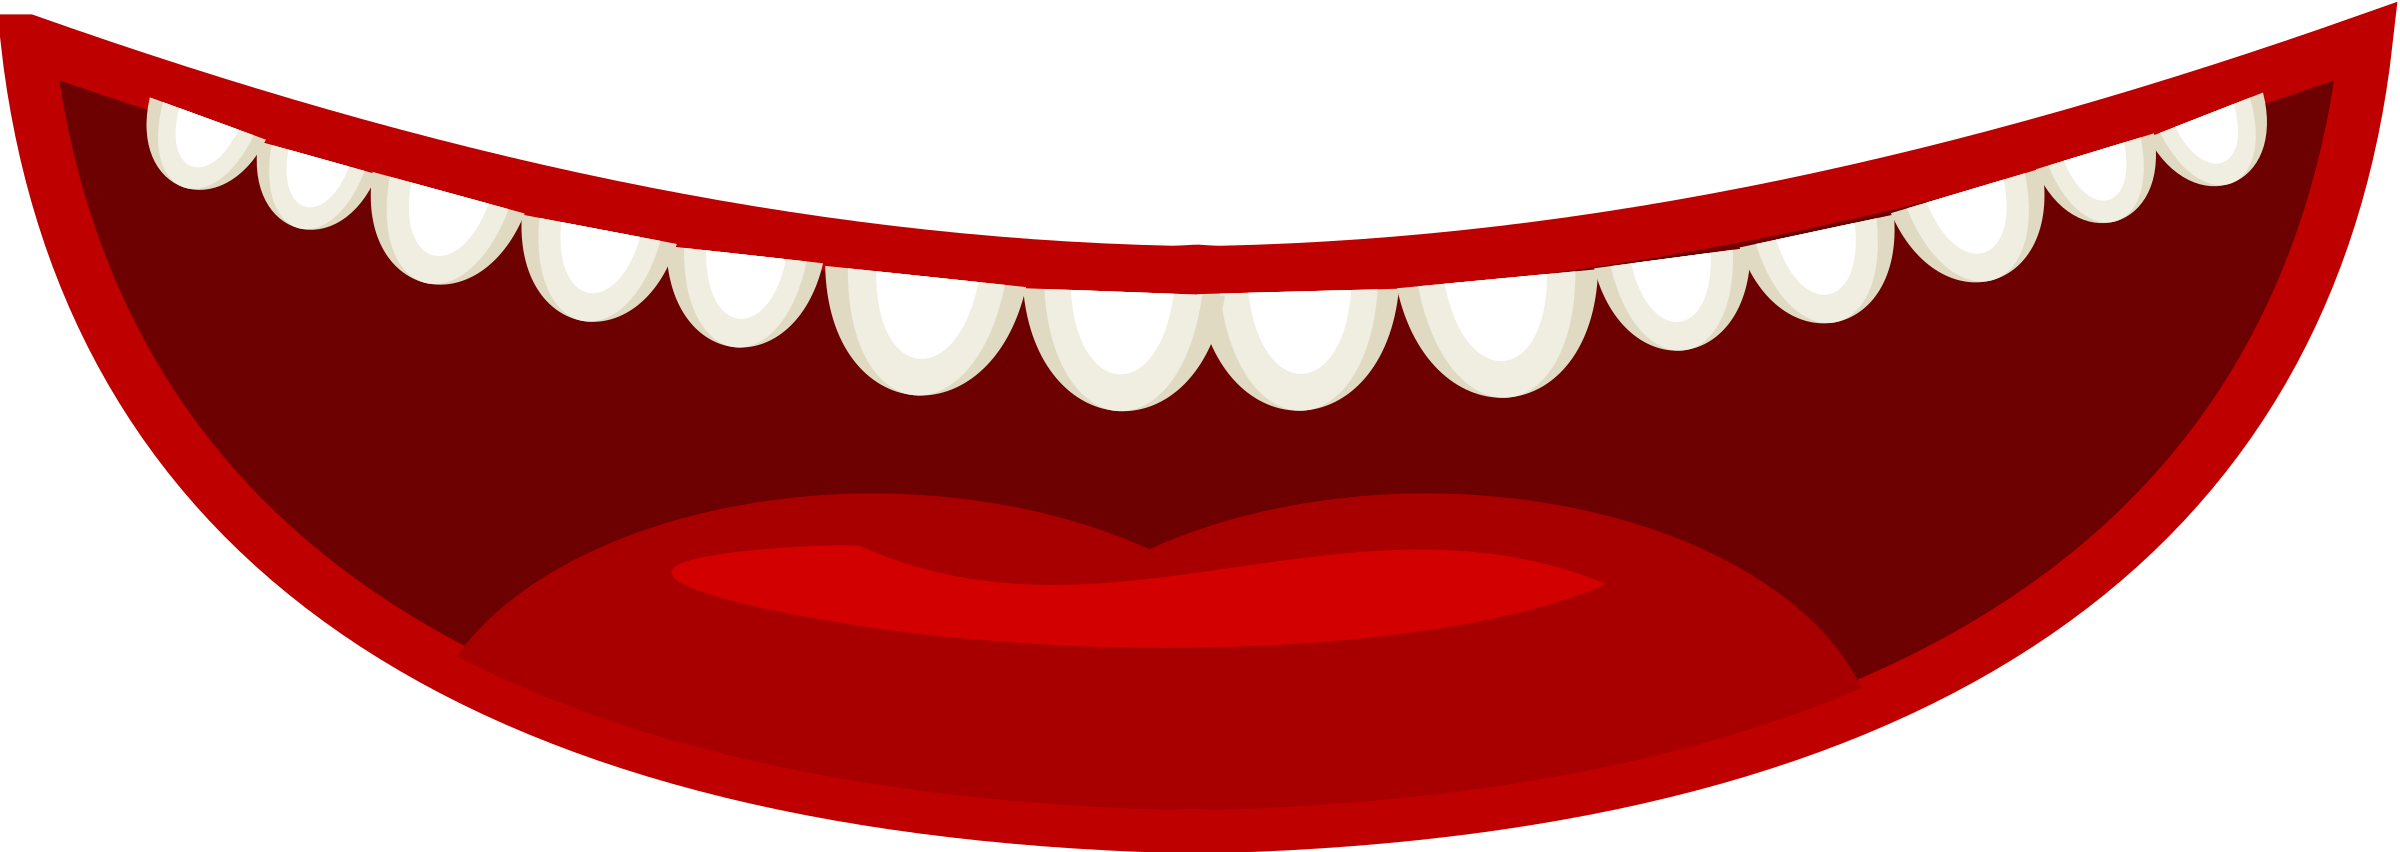 Cartoon mouth png. In a style icons